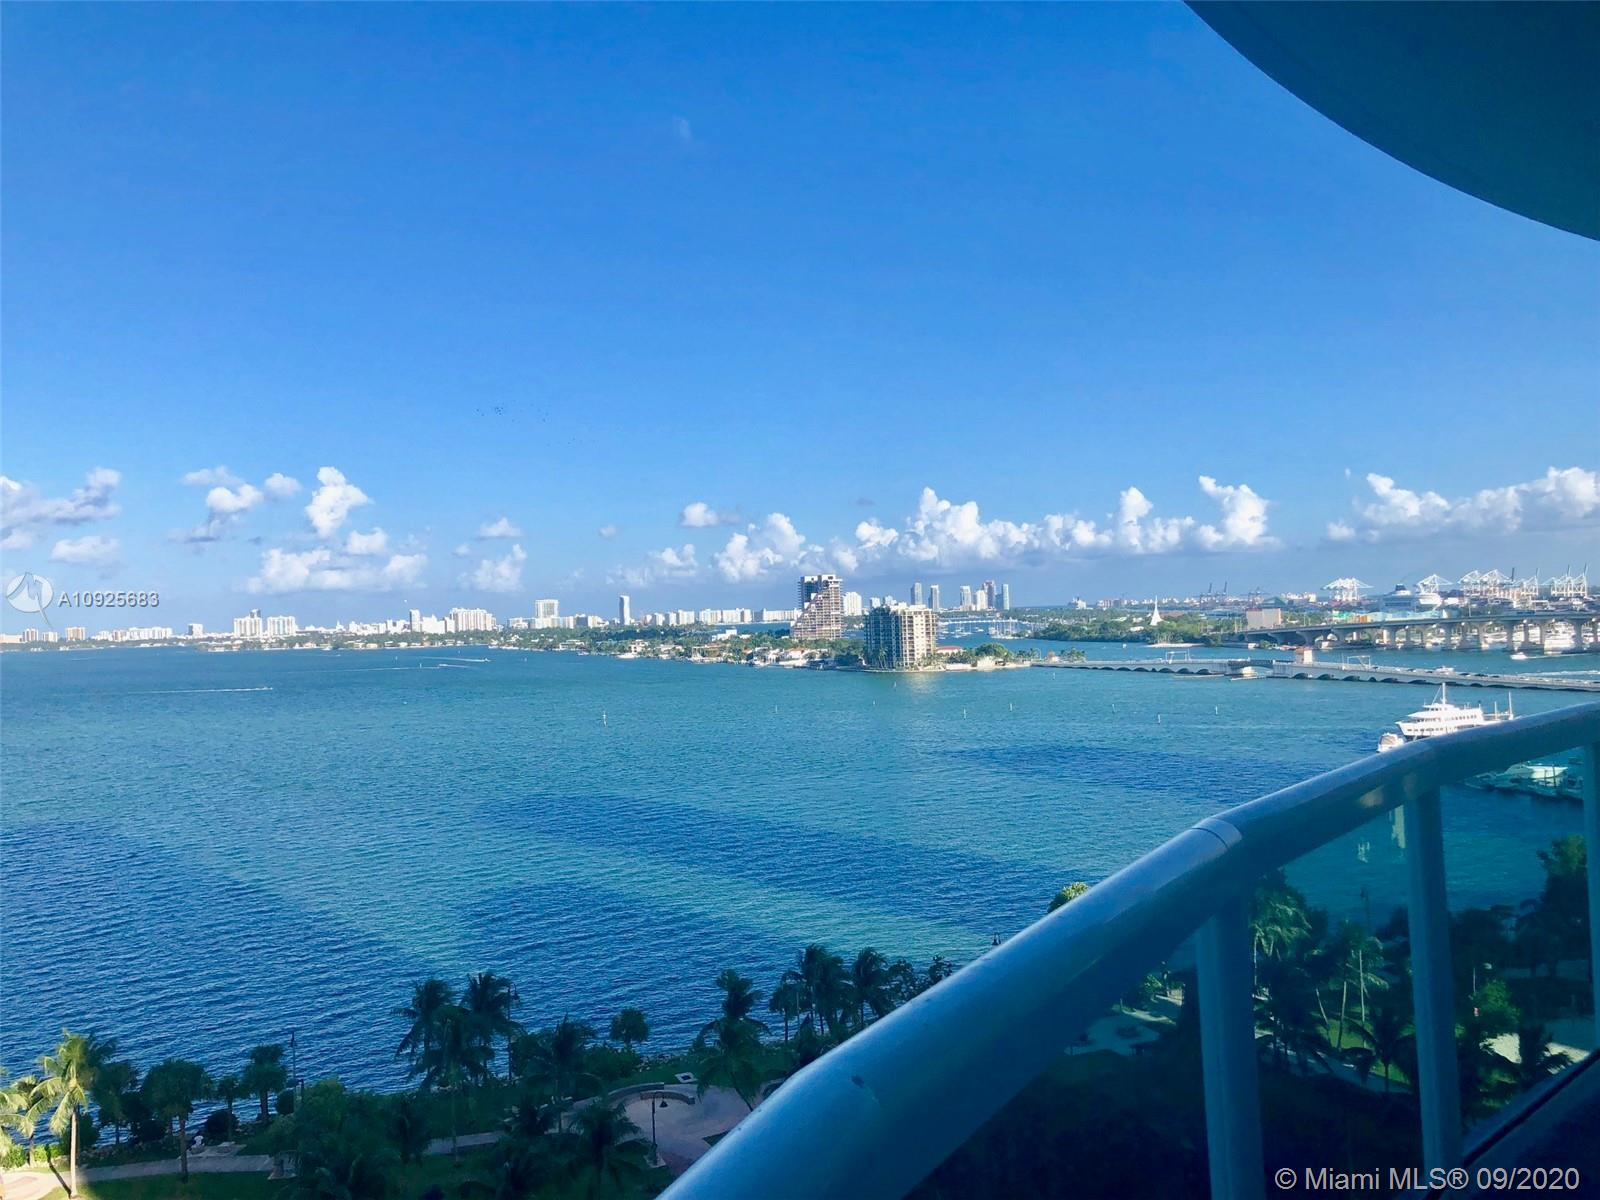 COME LIVE IN EDGEWATER WITH THE BEST VIEWS!SPECTACULAR 3/3(W2189 SQFT OF AC + 638 SQFT IN TERRACES)IN THE 1800 CLUB. DIRECT EAST VIEWS OF THE BISCAYNE BAY & OCEAN.UNIT FEELS LIKE A HOUSE W/EVERYTHING SPACIOUS & GREAT FLOOR PLAN!BOTH MASTER BEDROOM & SECOND BEDROOM ARE EN SUITES.FULL AMENITIES BUILDING INCLUDING VALET,DOORMAN,CONCIRGE,POLL & GYM ATTENDANT,IN_HOUSE MANAGEMENT,SPECTACULAR POOL AREA, STATE-OF-THE-ART GYM ......CABLE,HIGH SPEED INTERNET & WATER INCLUDED IN LOW HOA. WALK TO MARGARET PACE PARK,NIGHTLIFE, BANKS, SHOPS & PUBLIX & 3 BLOCKS TO PEOPLE MOVER. 5 MINUTES TO SOUTH BEACH, DOWNTOWN MIAMI, THE DESIGN DISTRICT, MIDTOWN & WYNWOOD.EASY ACCESS TO ALL MAJOR HIGHWAYS & PUBLIC TRANSPOTATION.EASY TO SHOW.